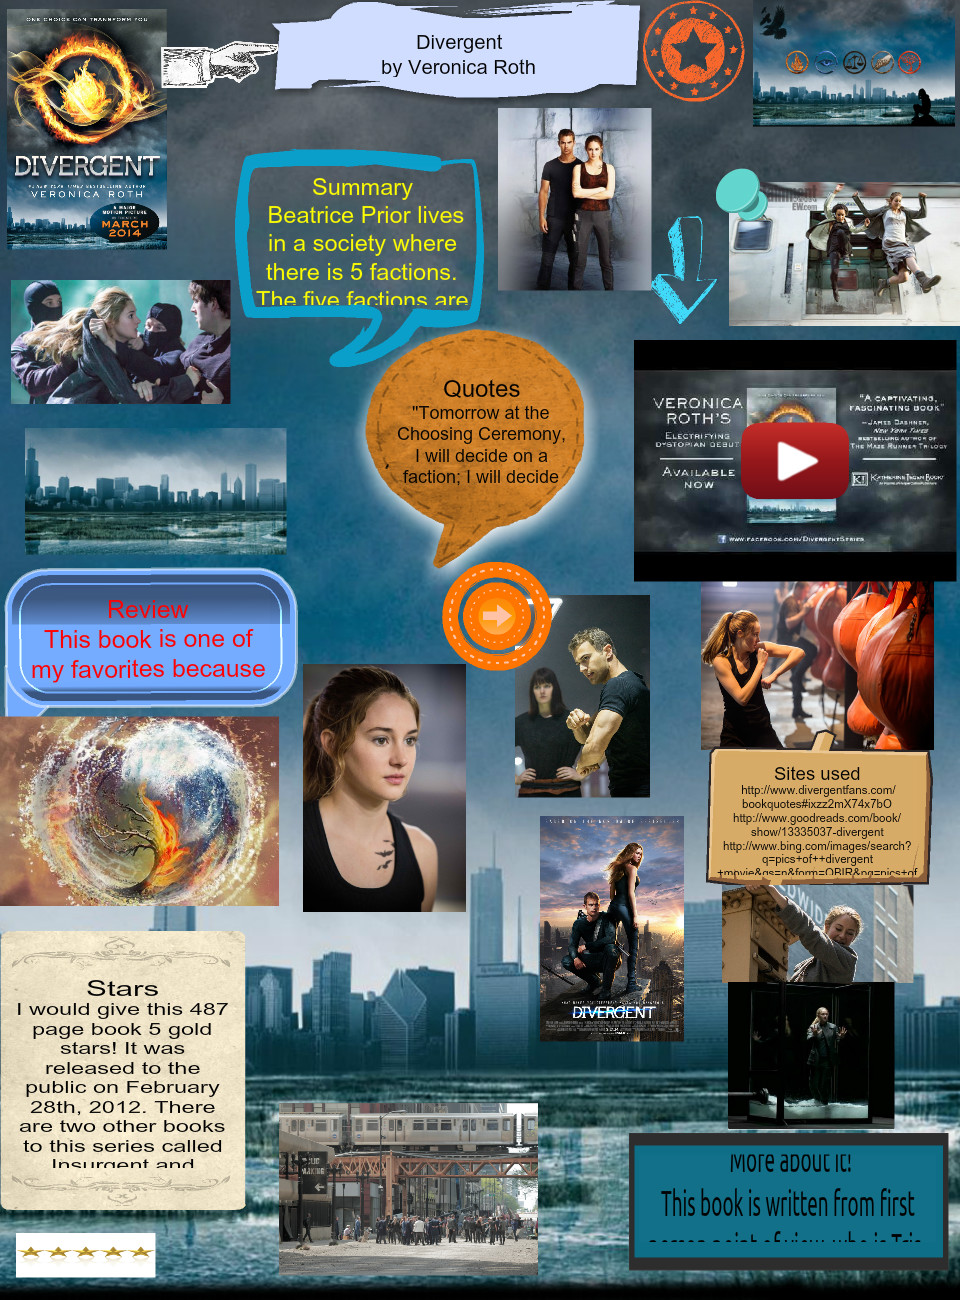 Book report: Veronica Roth - Divergent (Project)